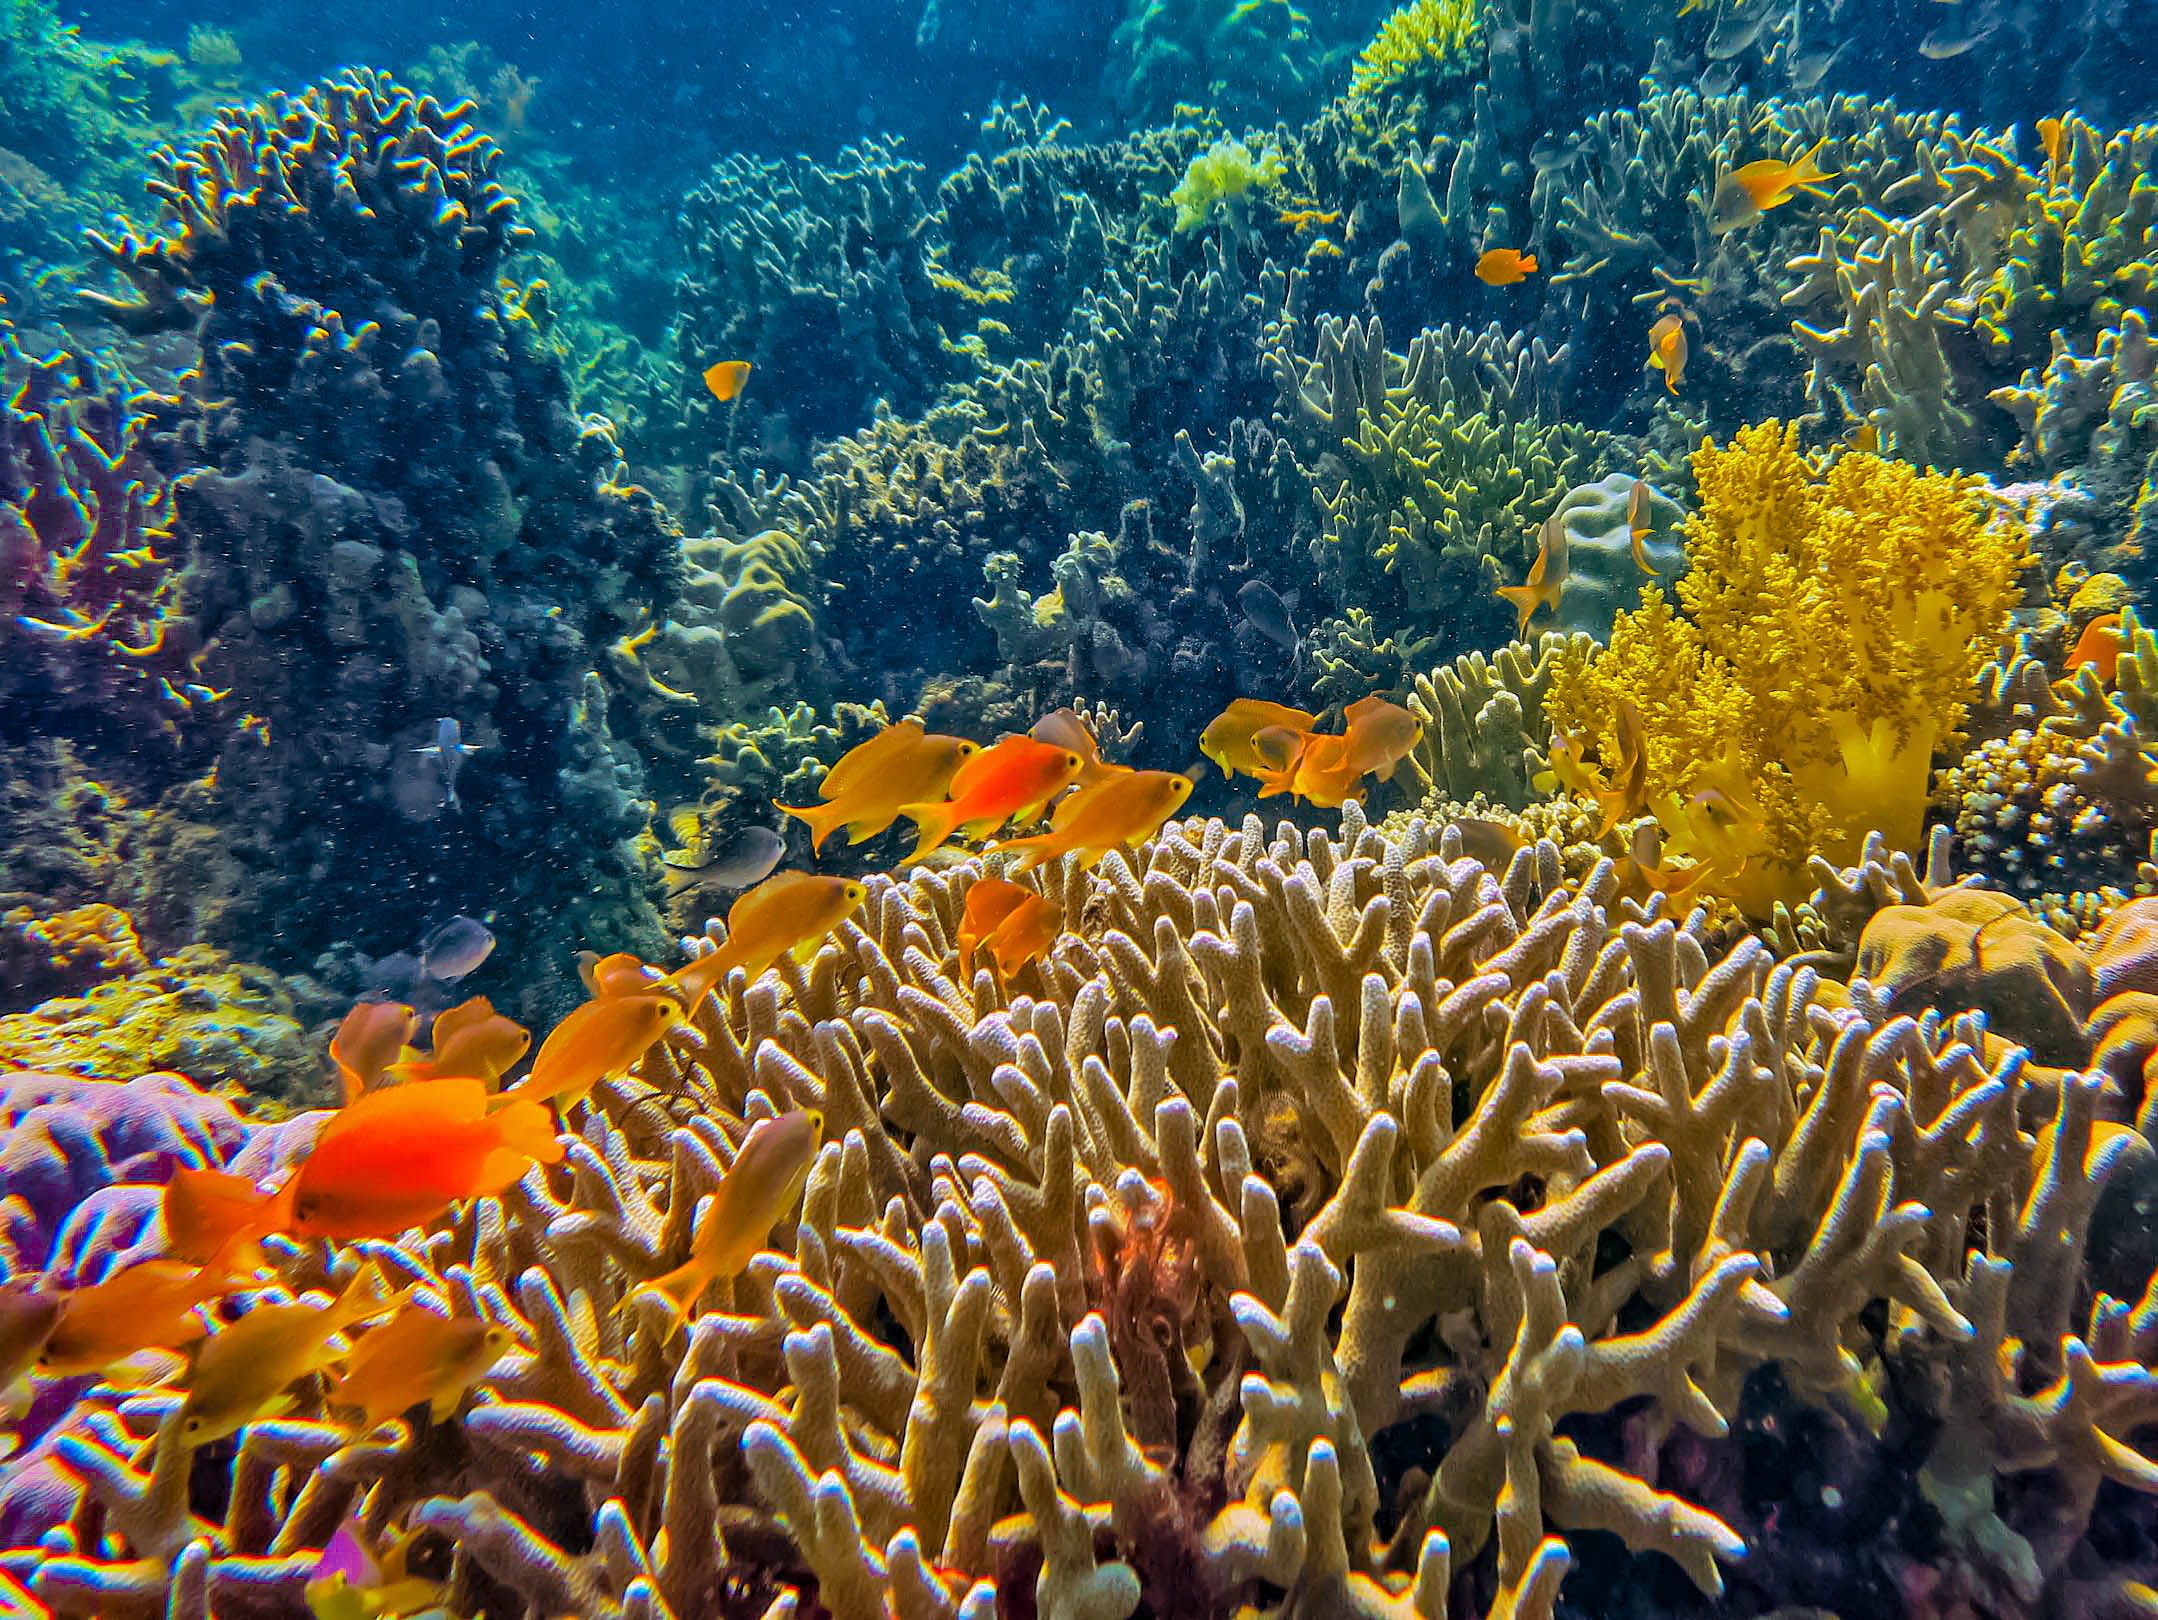 Colorful coral reef with numerous colorful tropical reef fishes in Philippine waters